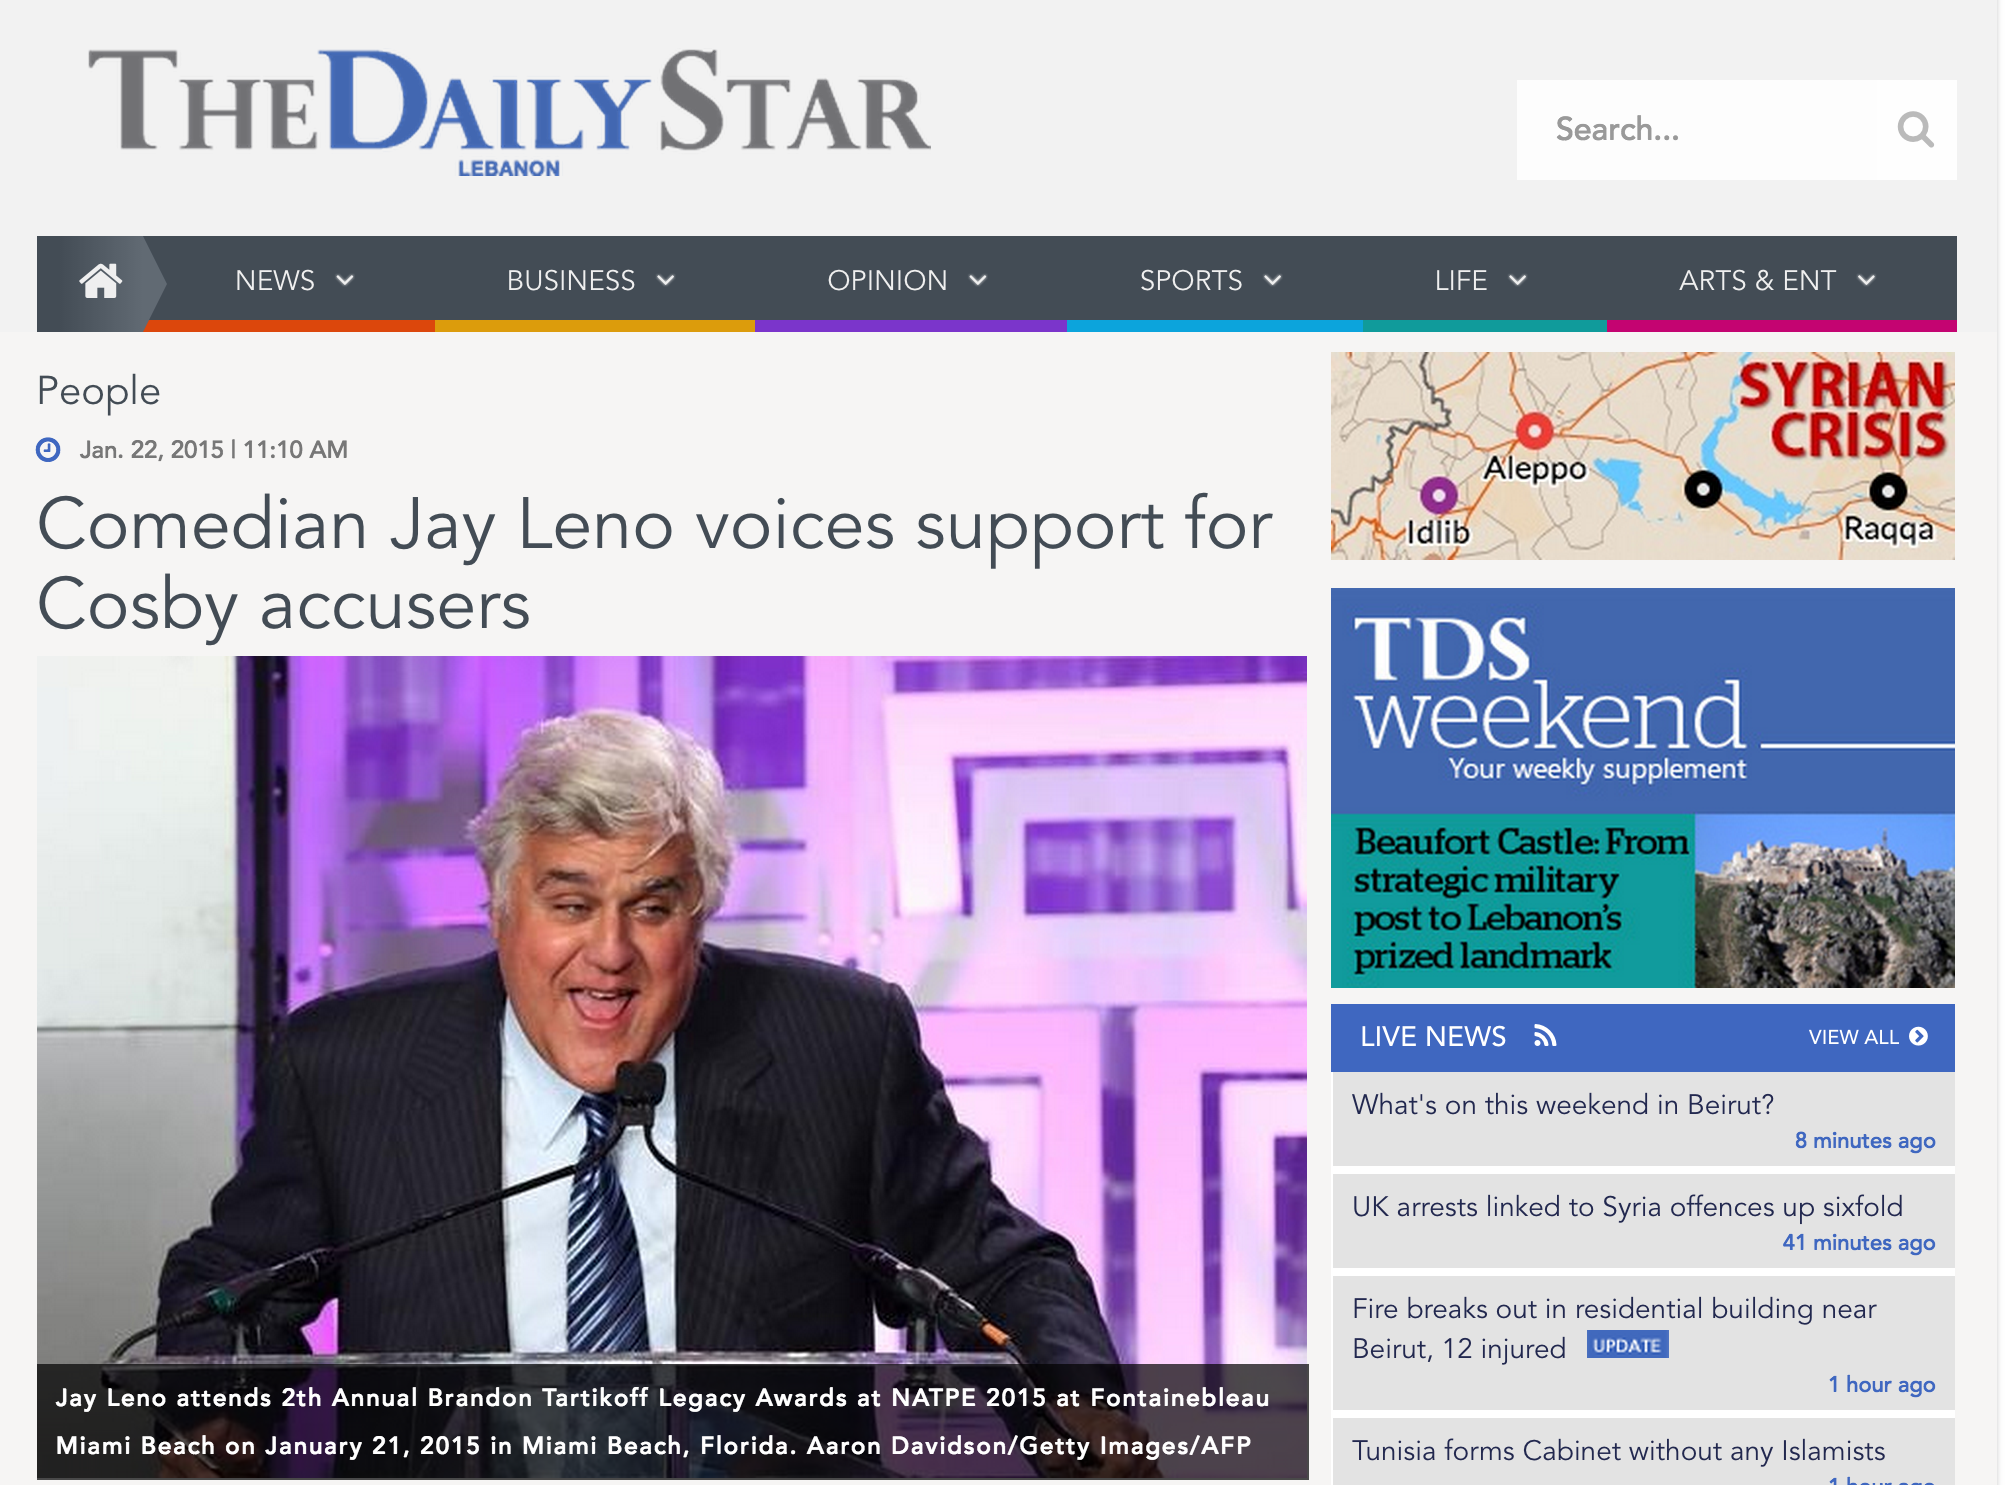 Jay Leno in Daily Star Lebanon